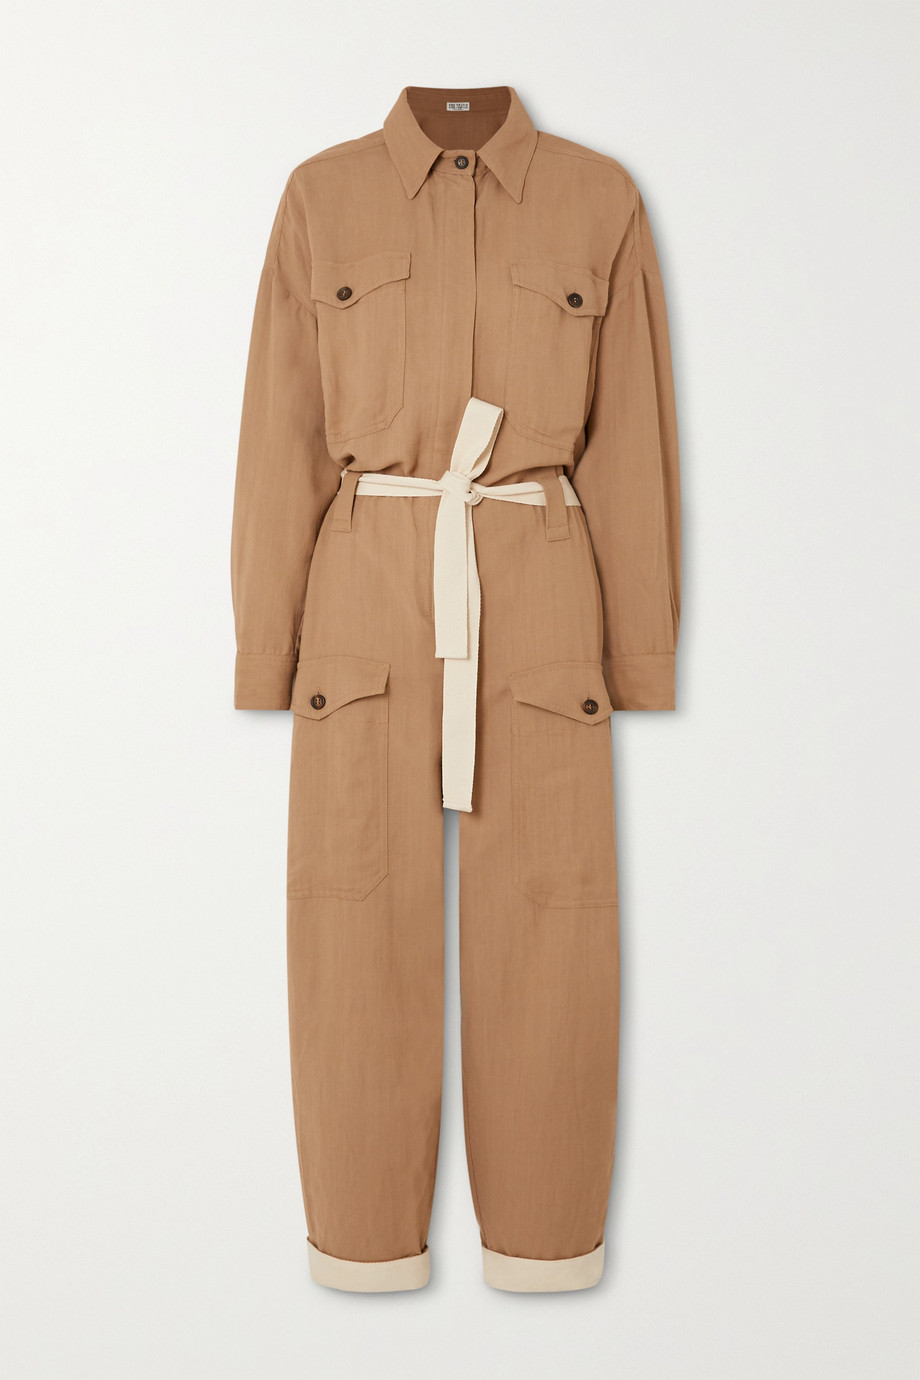 Brunello Cucinelli + Space for Giants belted twill jumpsuit